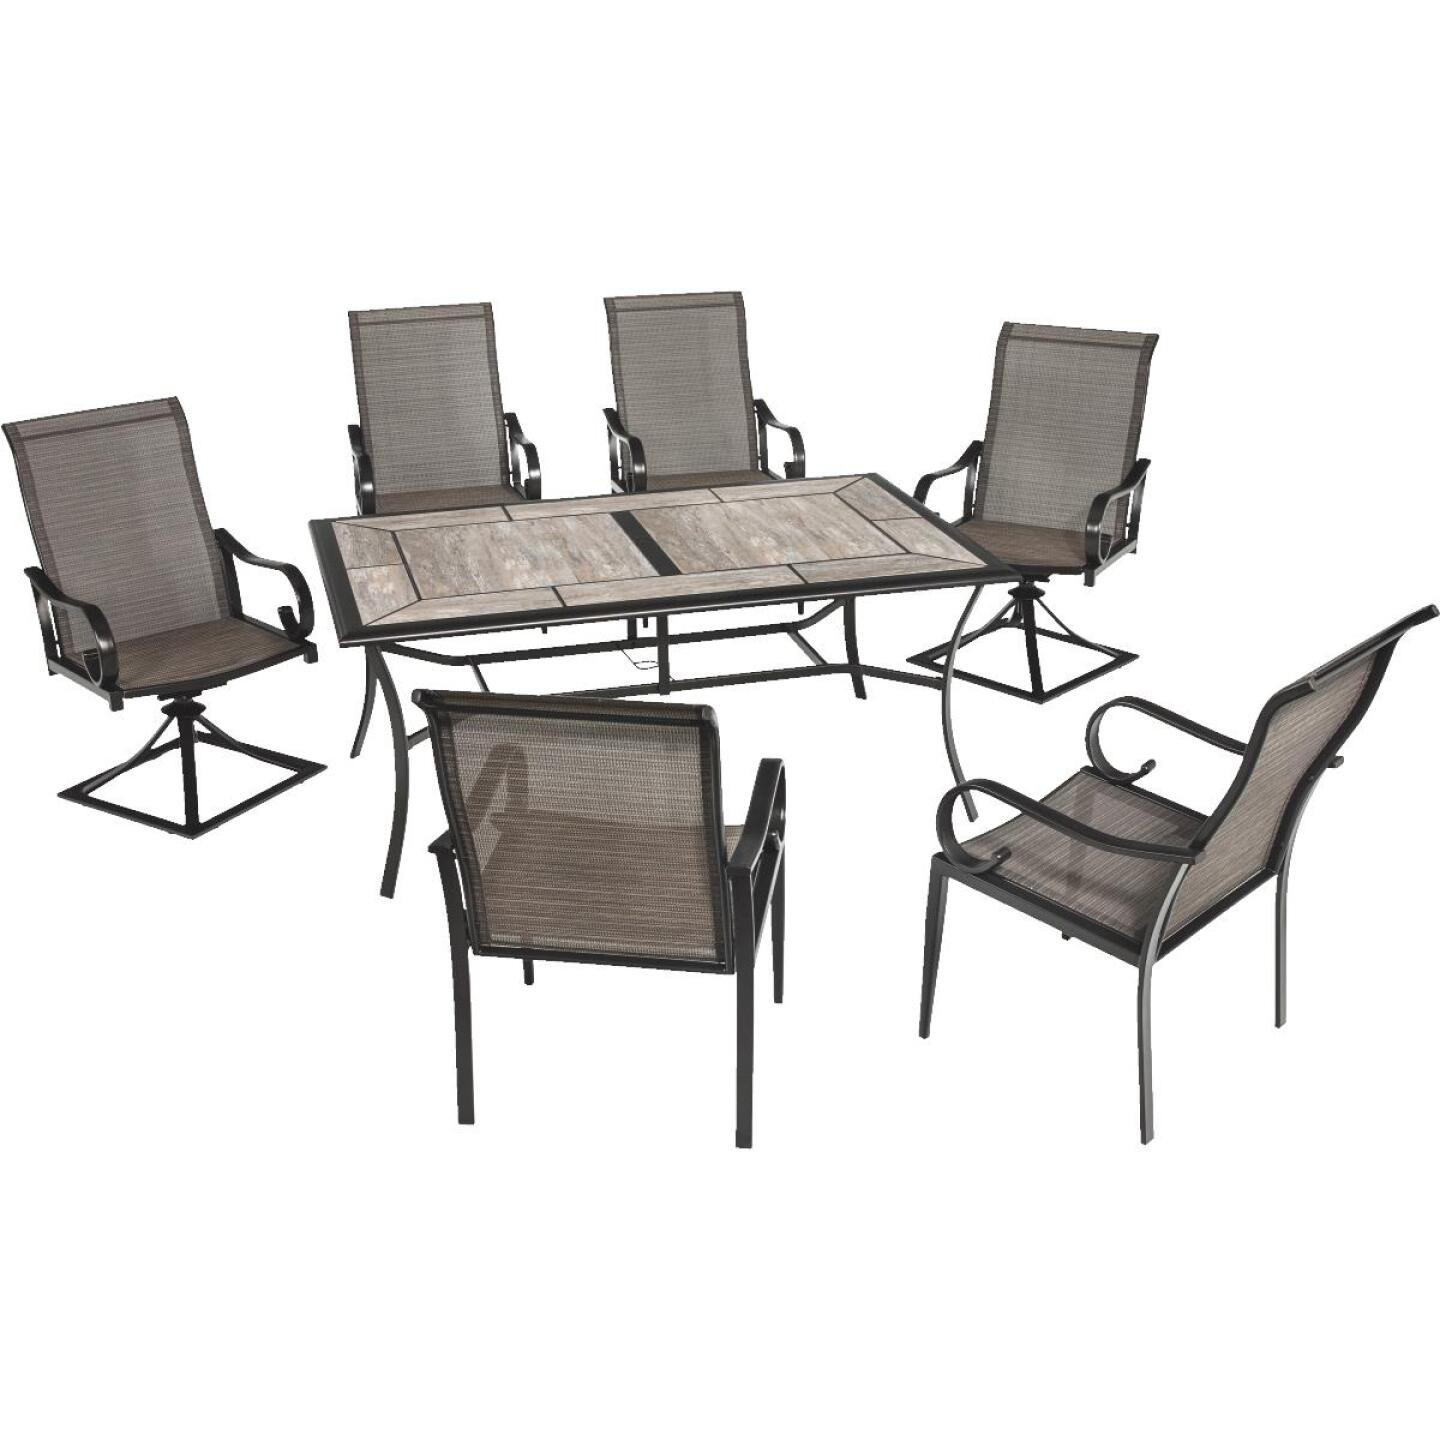 Outdoor Expressions Berkshire 7-Piece Dining Set Image 266